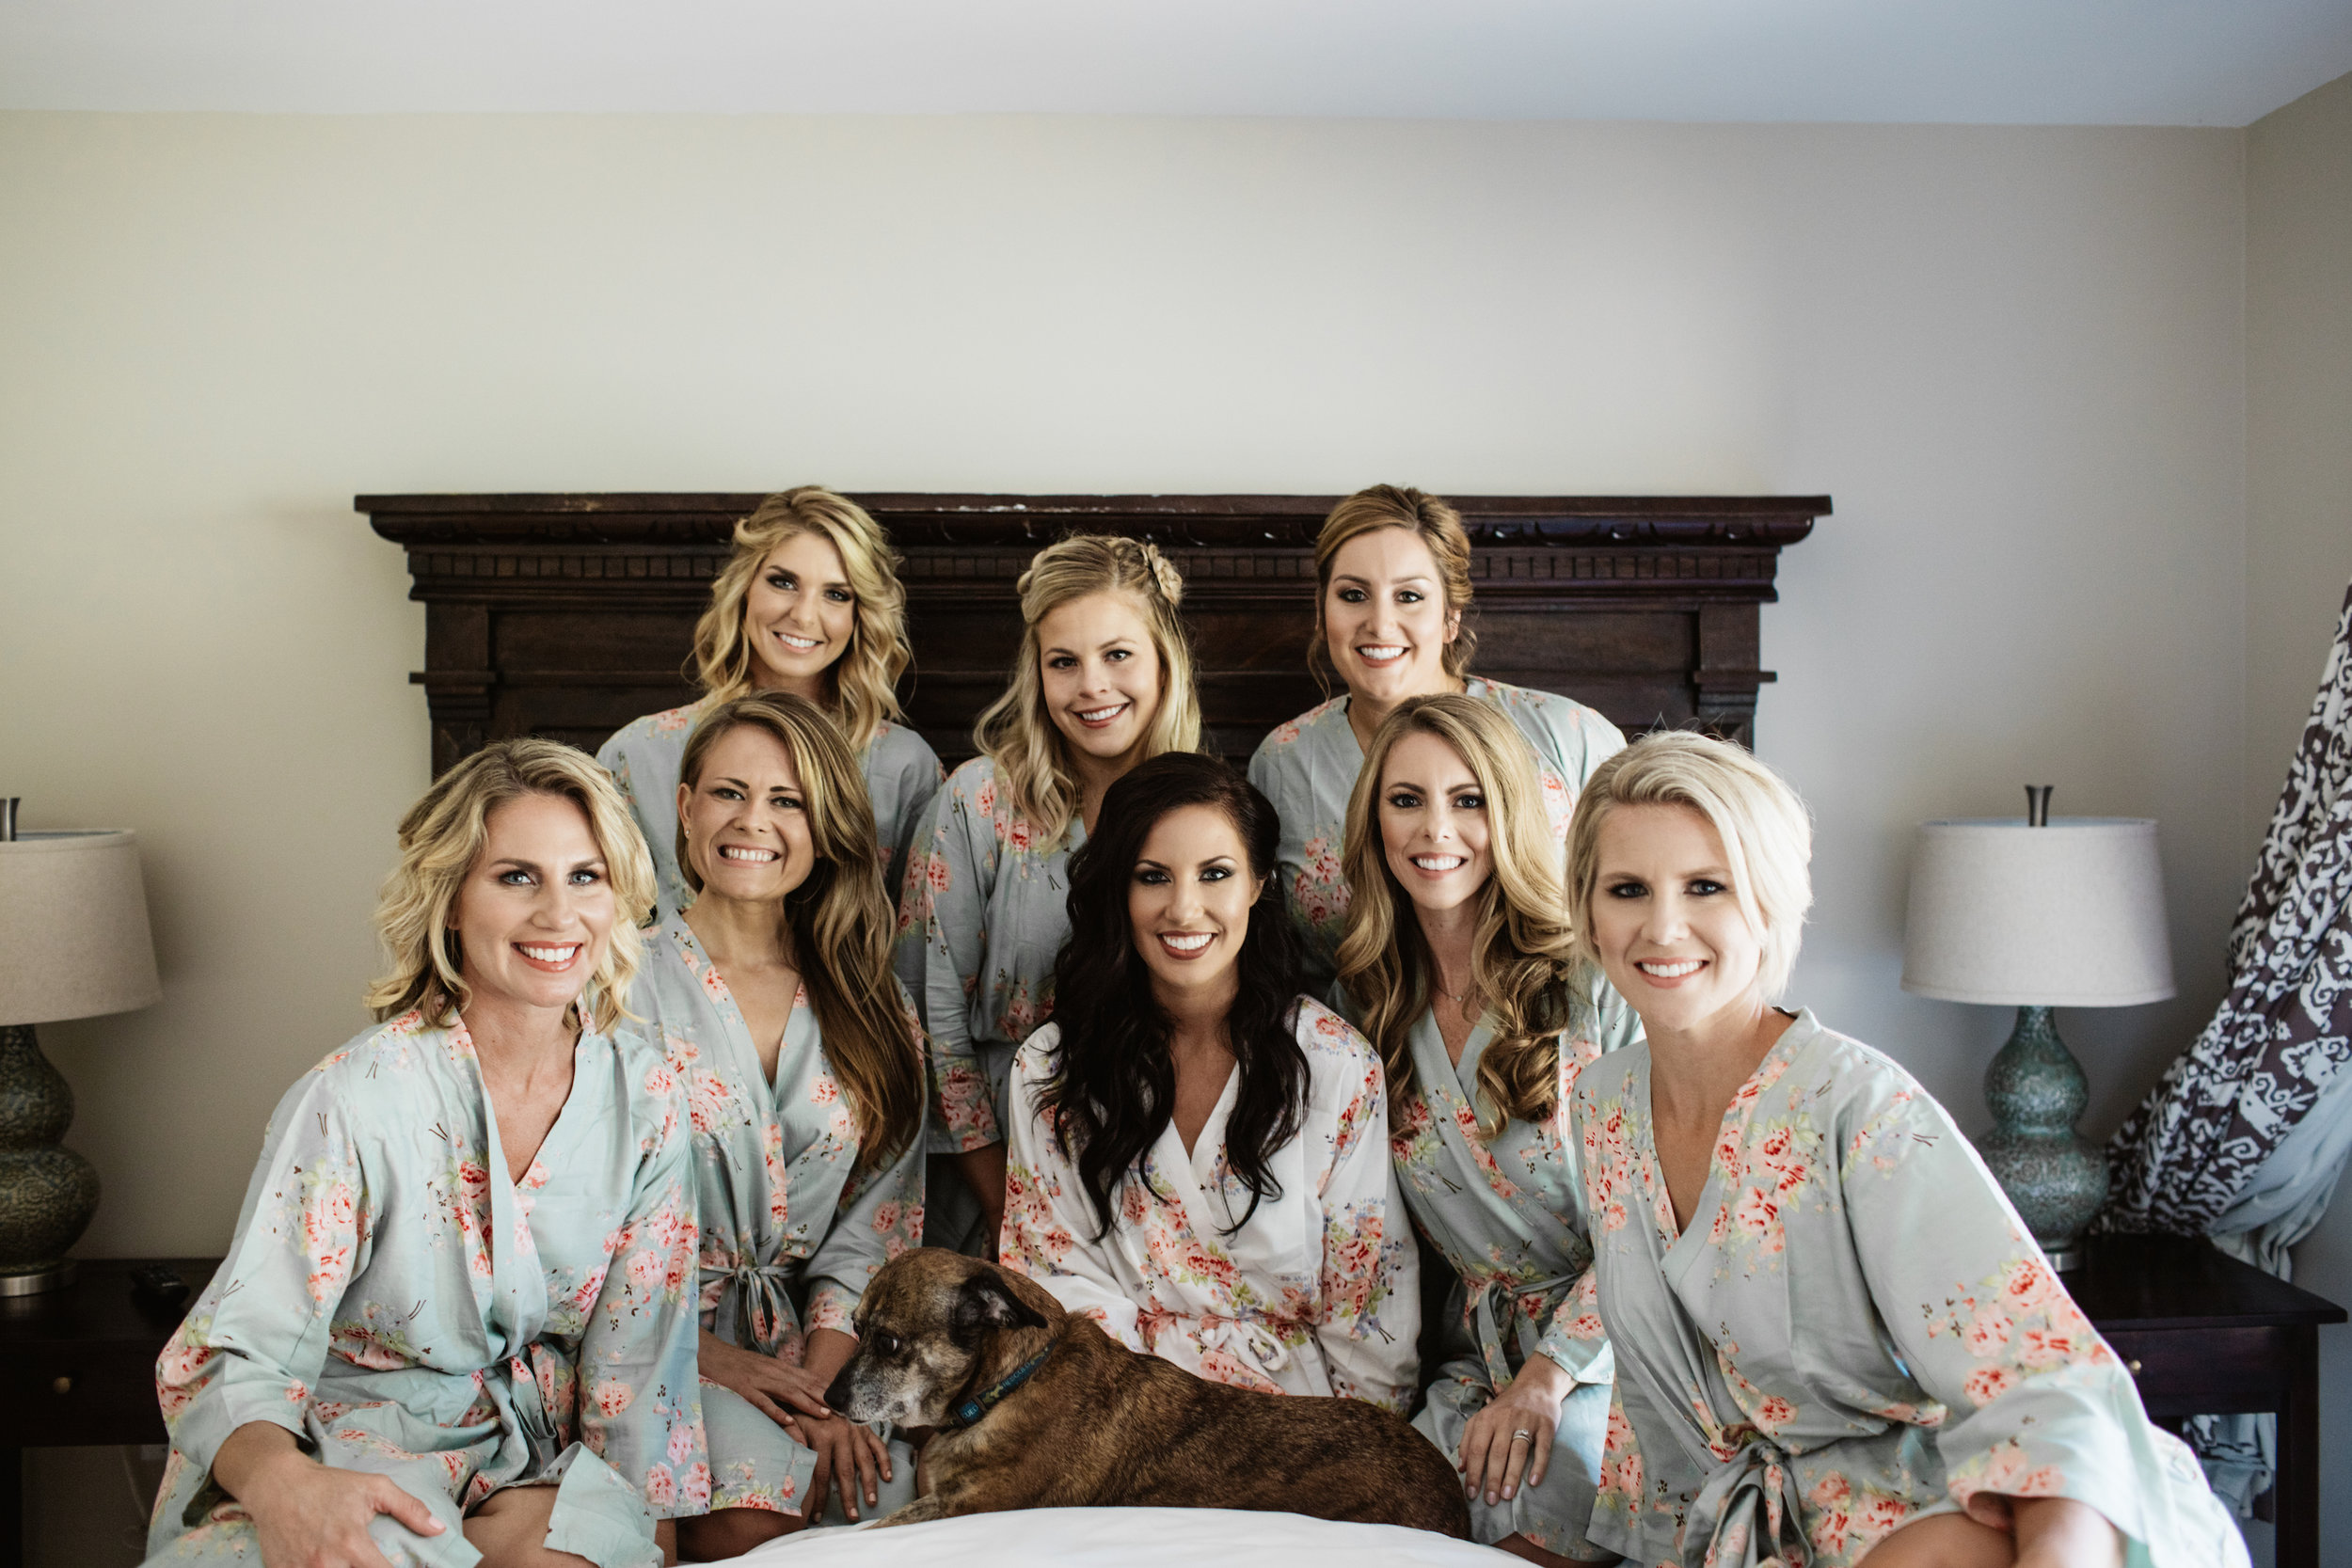 Morning of Wedding Bridesmaids Floral Robes with Hair and Makeup